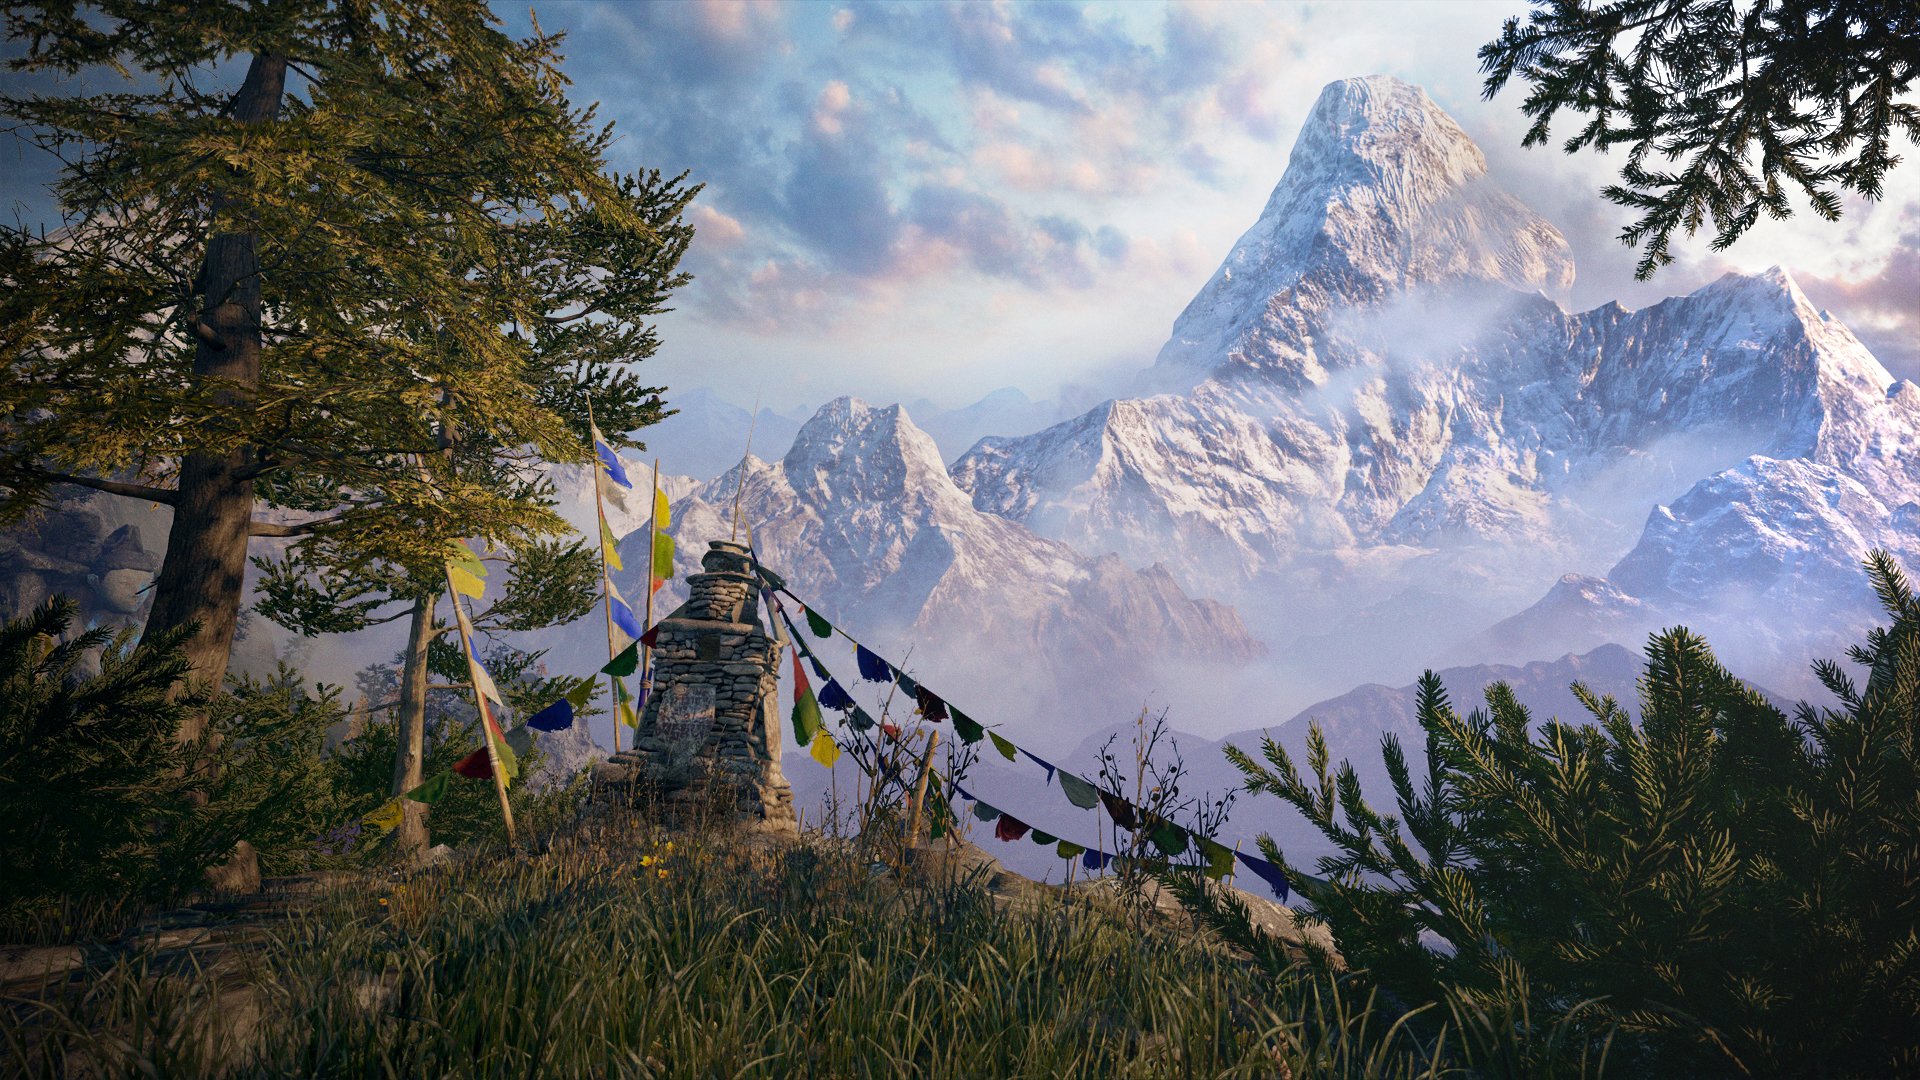 131 far cry 4 hd wallpapers | background images - wallpaper abyss